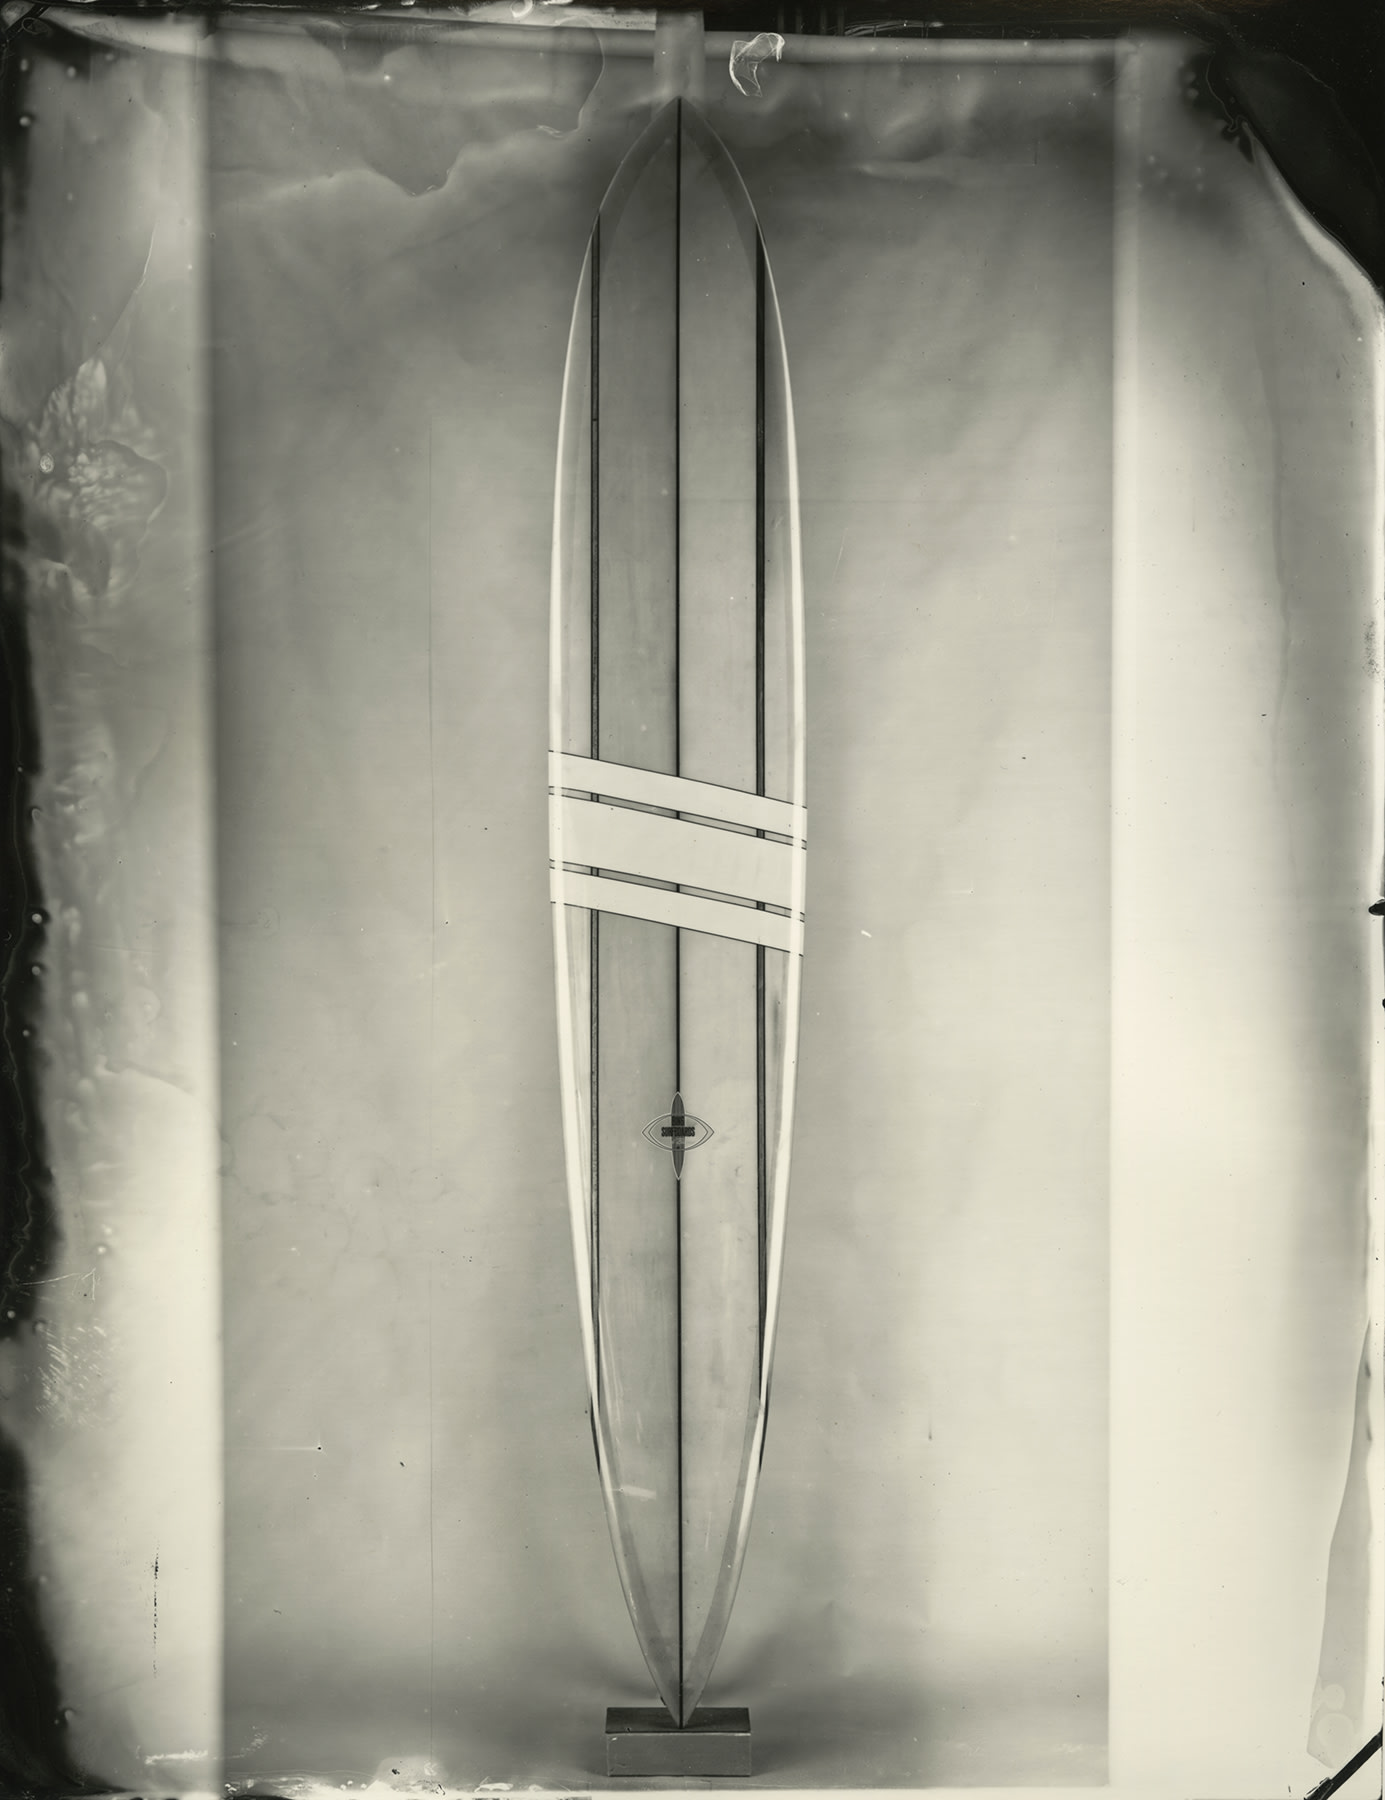 """<span class=""""link fancybox-details-link""""><a href=""""/content/feature/210/artworks1047/"""">View Detail Page</a></span><div class=""""medium"""">Silver gelatin print<br /> Framed in a handmade white box frame with museum glass</div> <div class=""""dimensions"""">35.6 x 27.9 cm<br /> 14 x 11 in</div> <div class=""""edition_details"""">Edition 1 of 8 plus 2 artist's proofs</div>"""